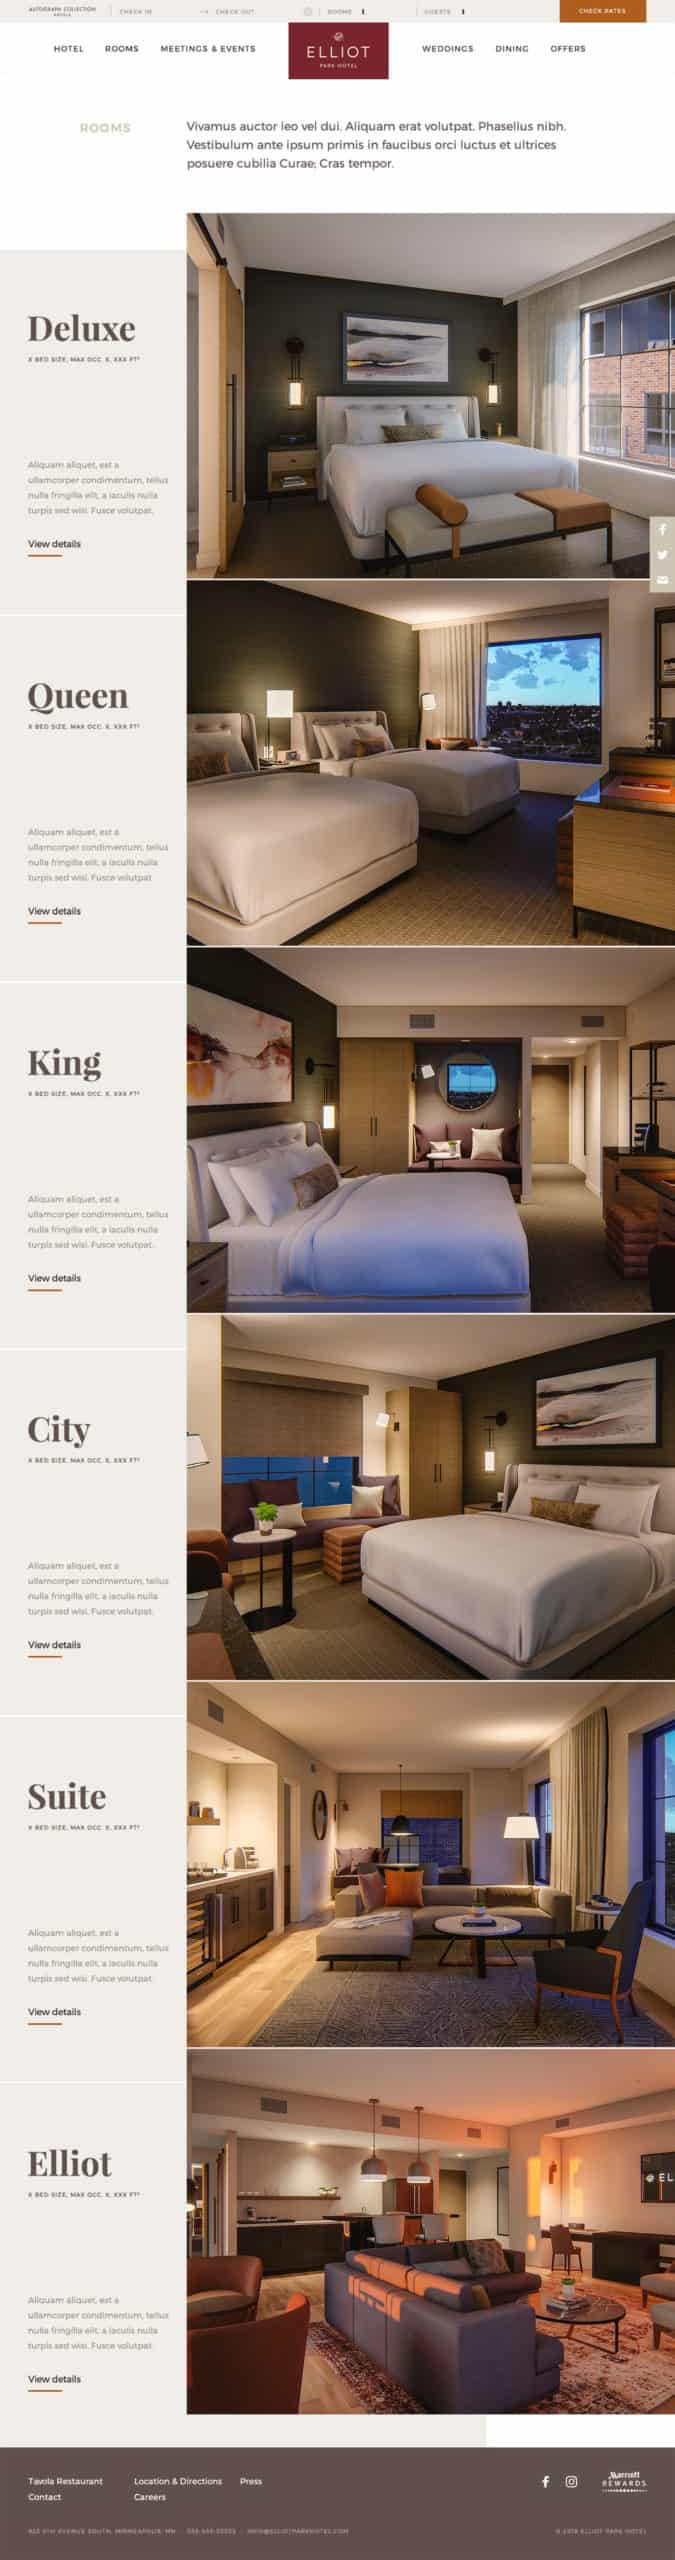 Screenshot of the Elliot Park Hotel room listing page